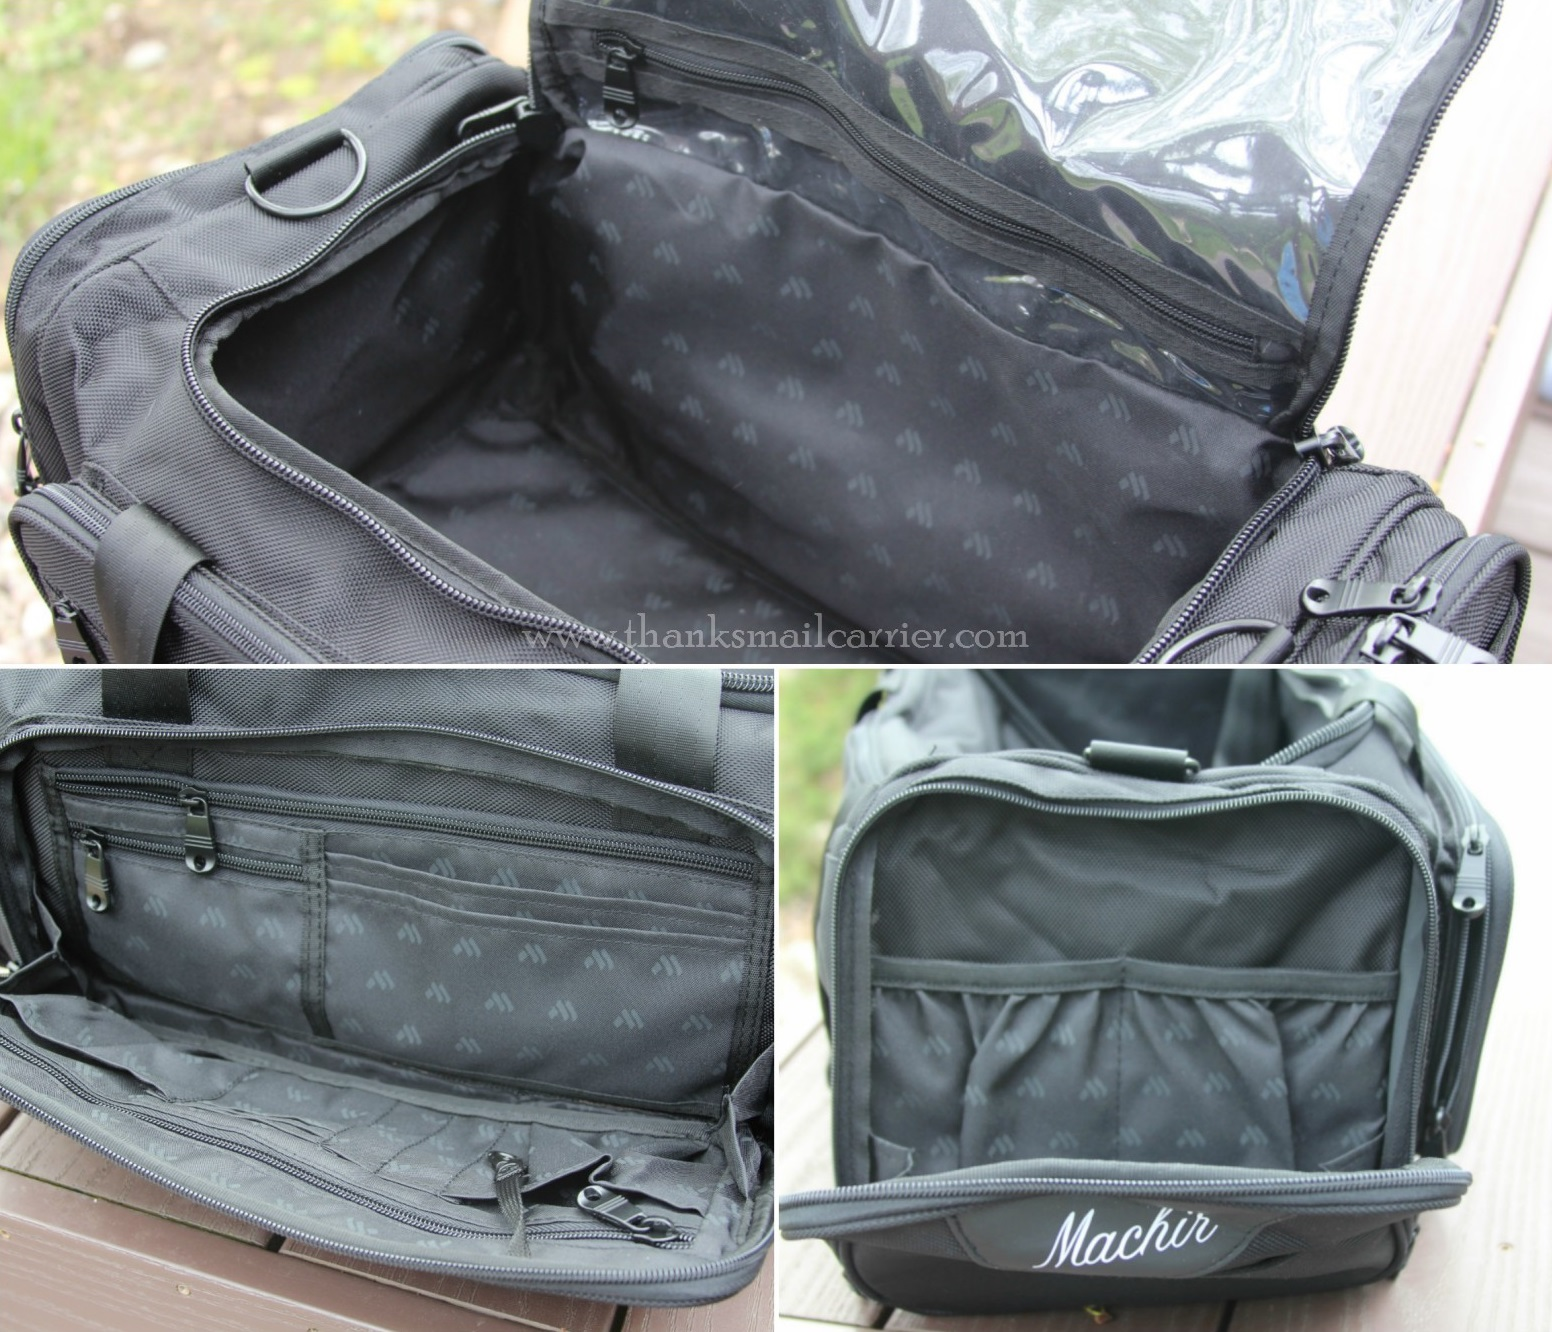 Machir small duffle review